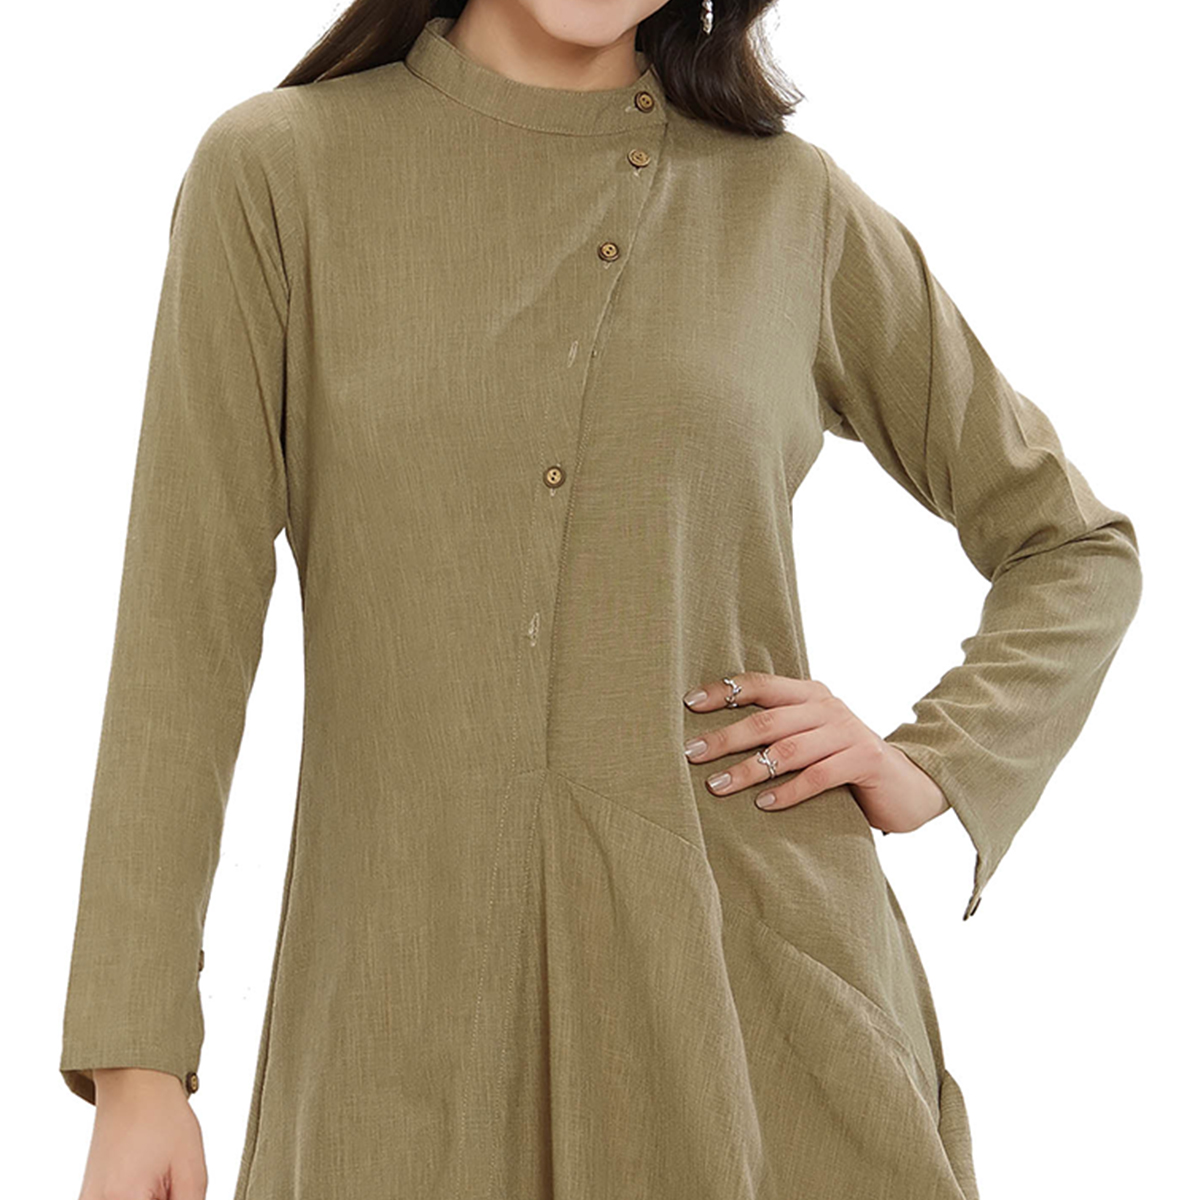 Pleasance Grey Colored Party Wear Rayon Kurti